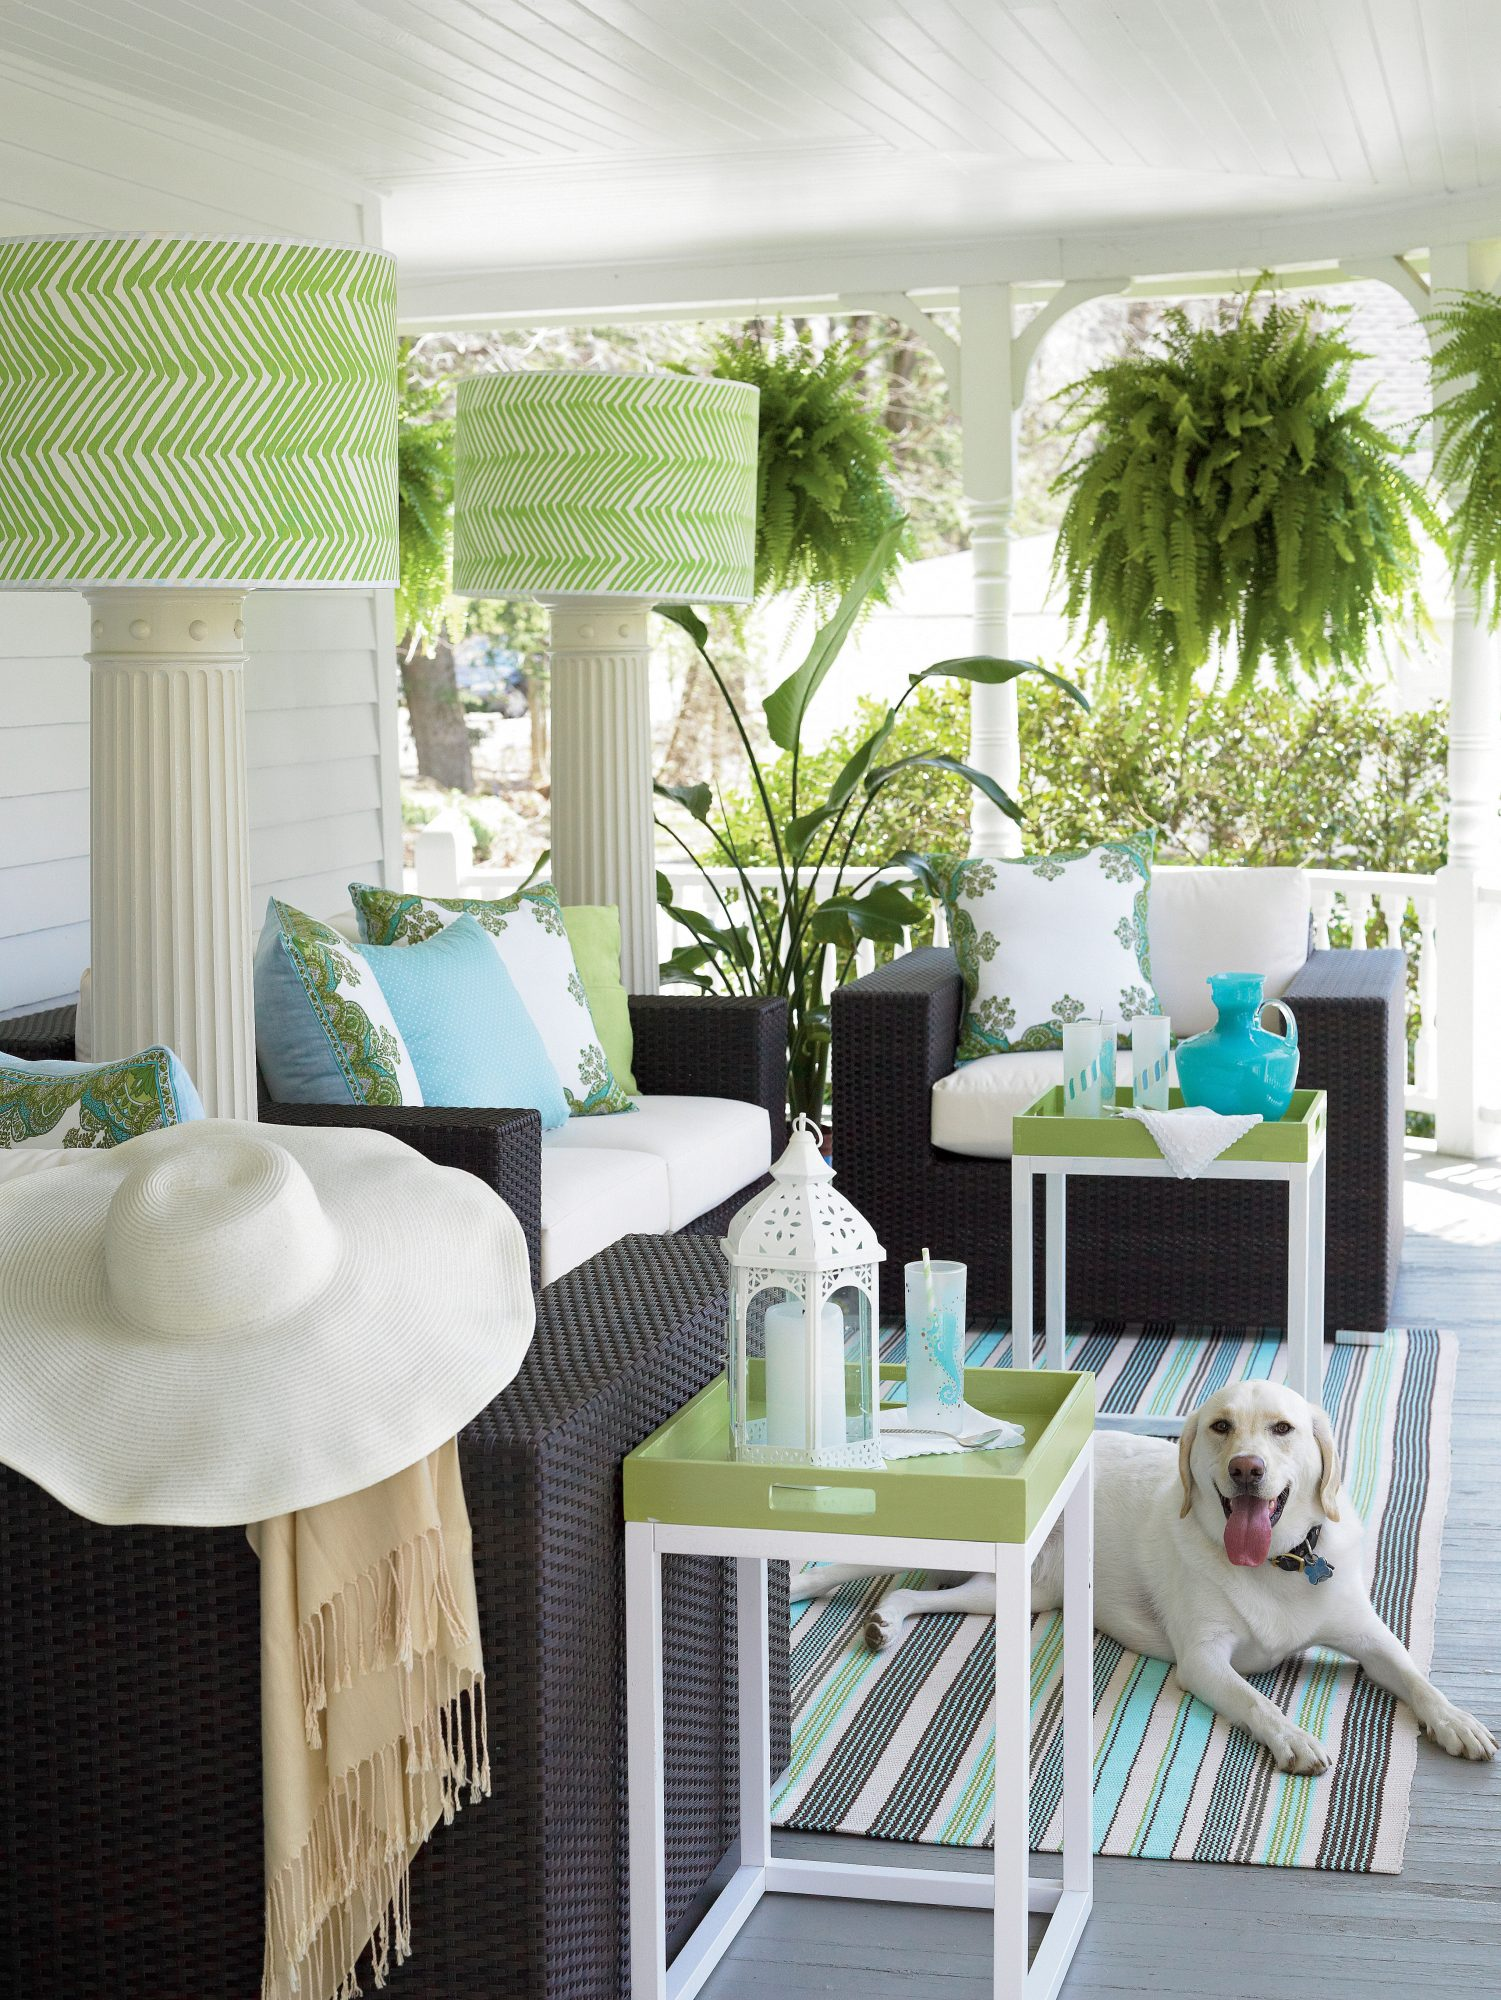 Top 10 Budget Decorating Ideas | Southern Living